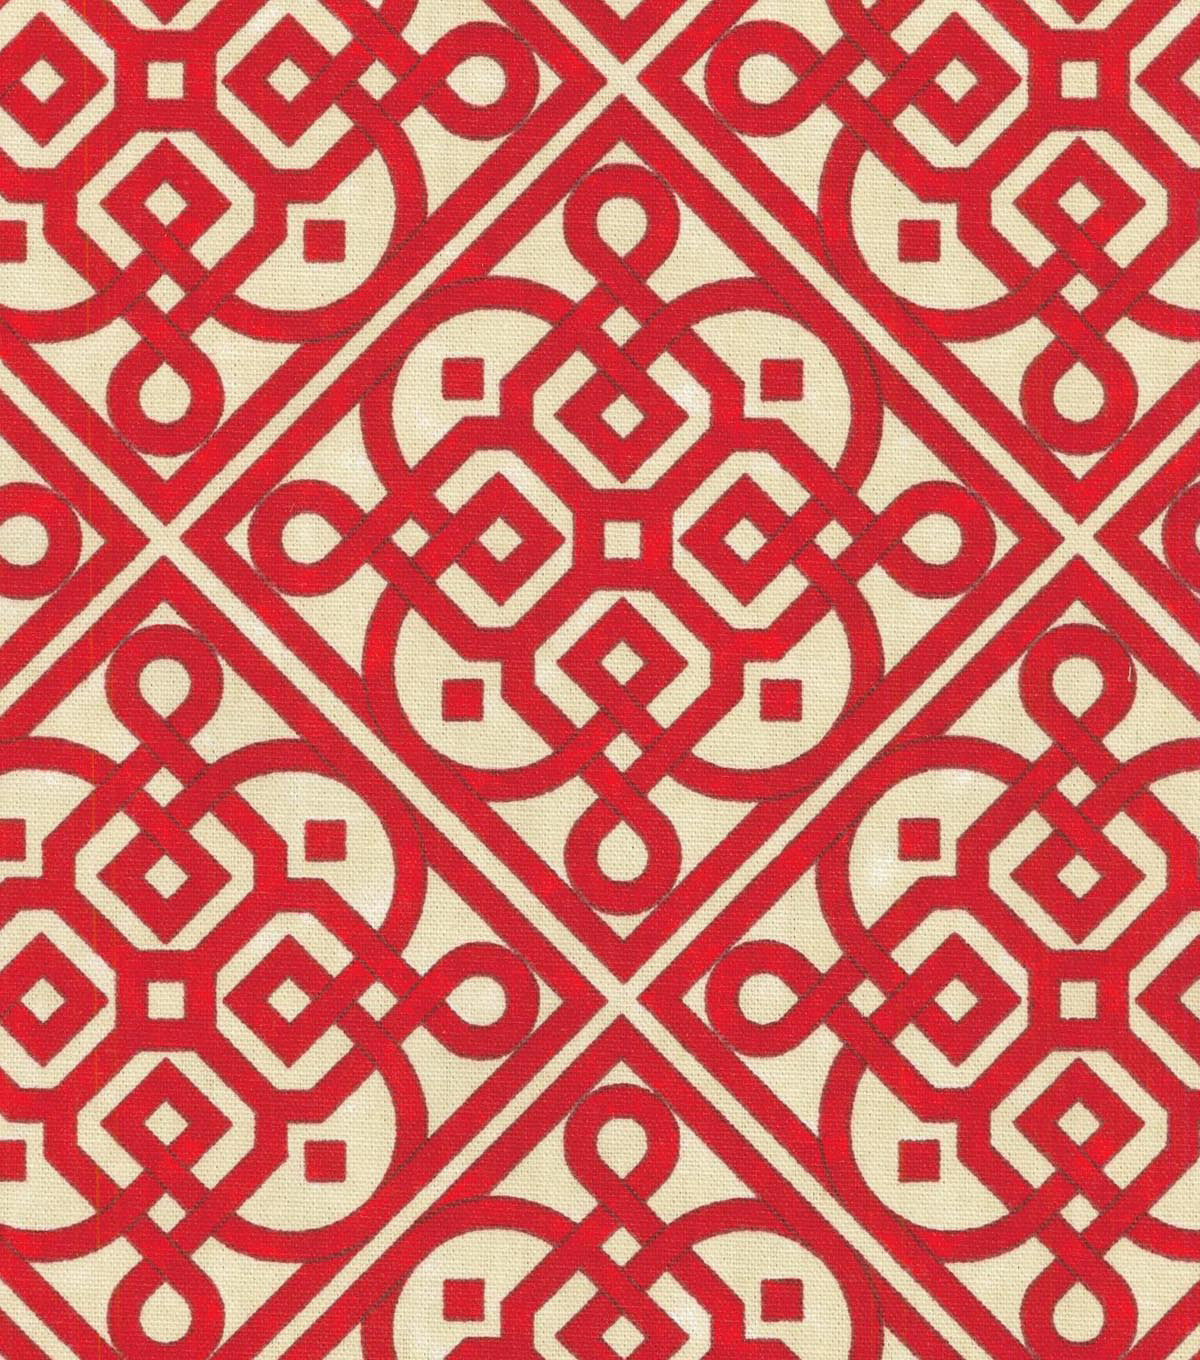 Waverly Lightweight Decor Fabric-Lace It Up Scarlet